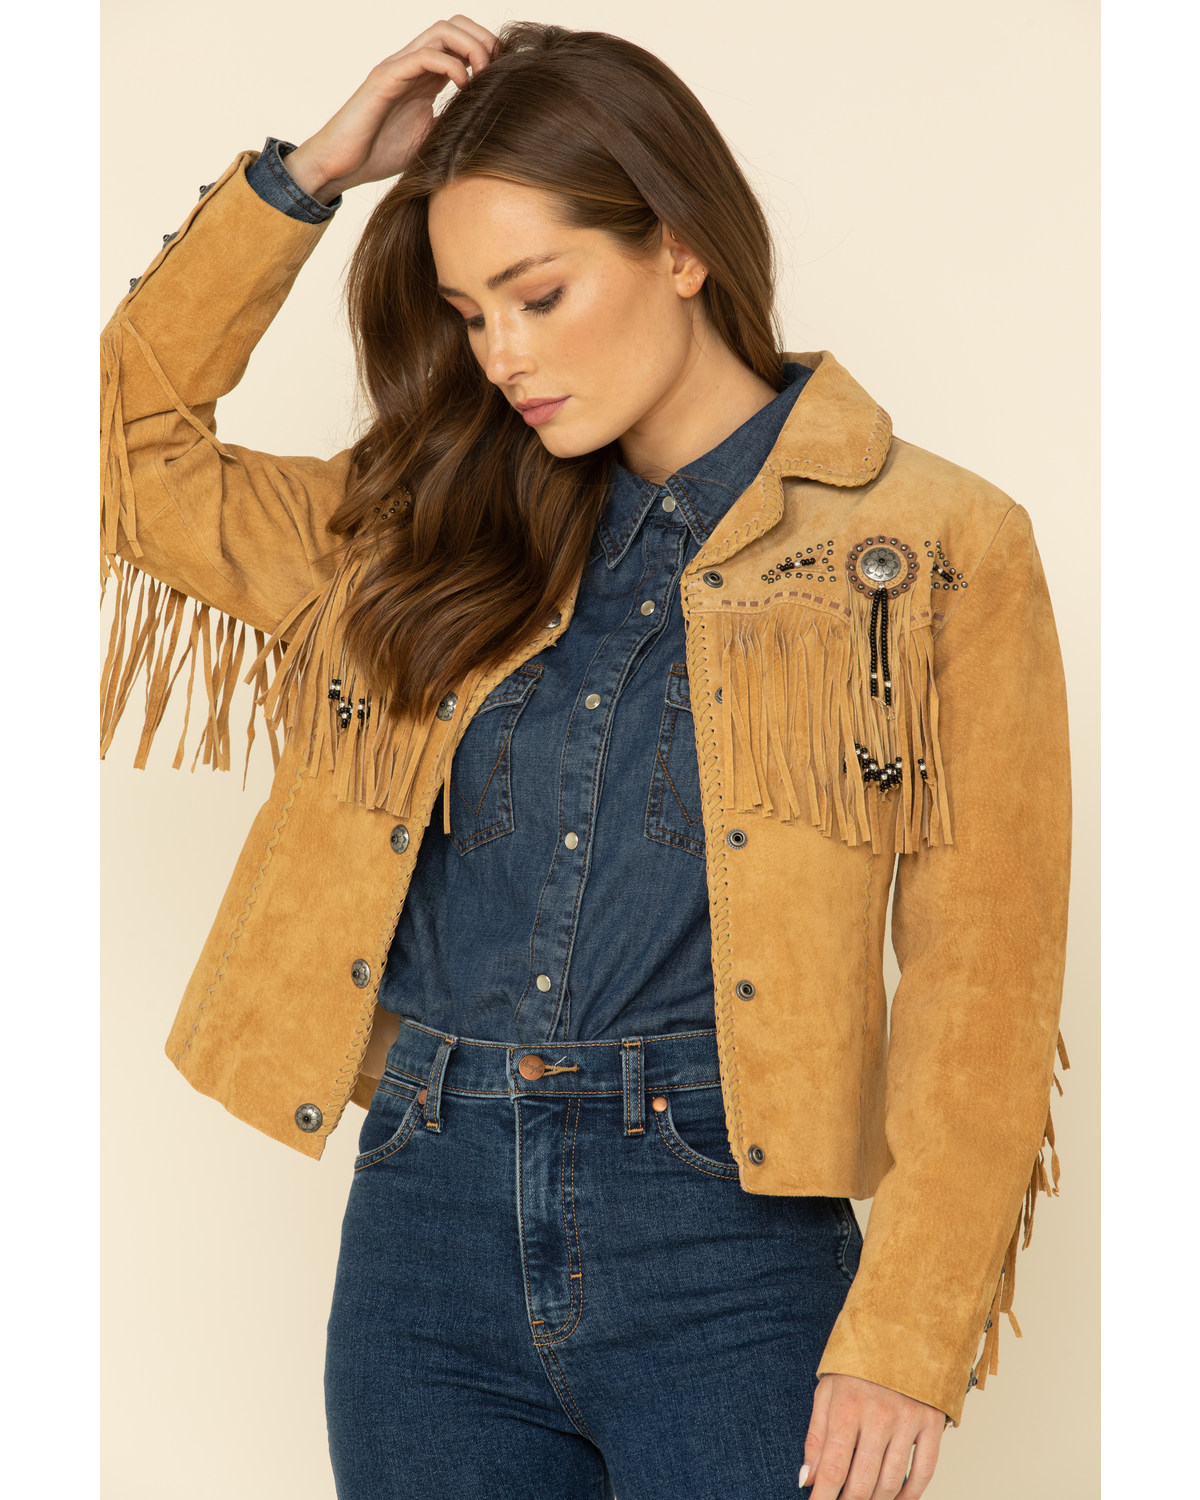 Mens Western Leather Coats. 1; 2; BOURBON BOAR LEATHER HAND MADE SUEDE JACKET FRINGED AND BEADED WESTERN STYLE AND DESIGNED JACKET TOP QUALITY SCULLY PRODUCT $ Add to Compare. Add to Wishlist. Choose Options. Two Toned Suede Rodeo Jacket By Scully Leather $ Add to Compare.